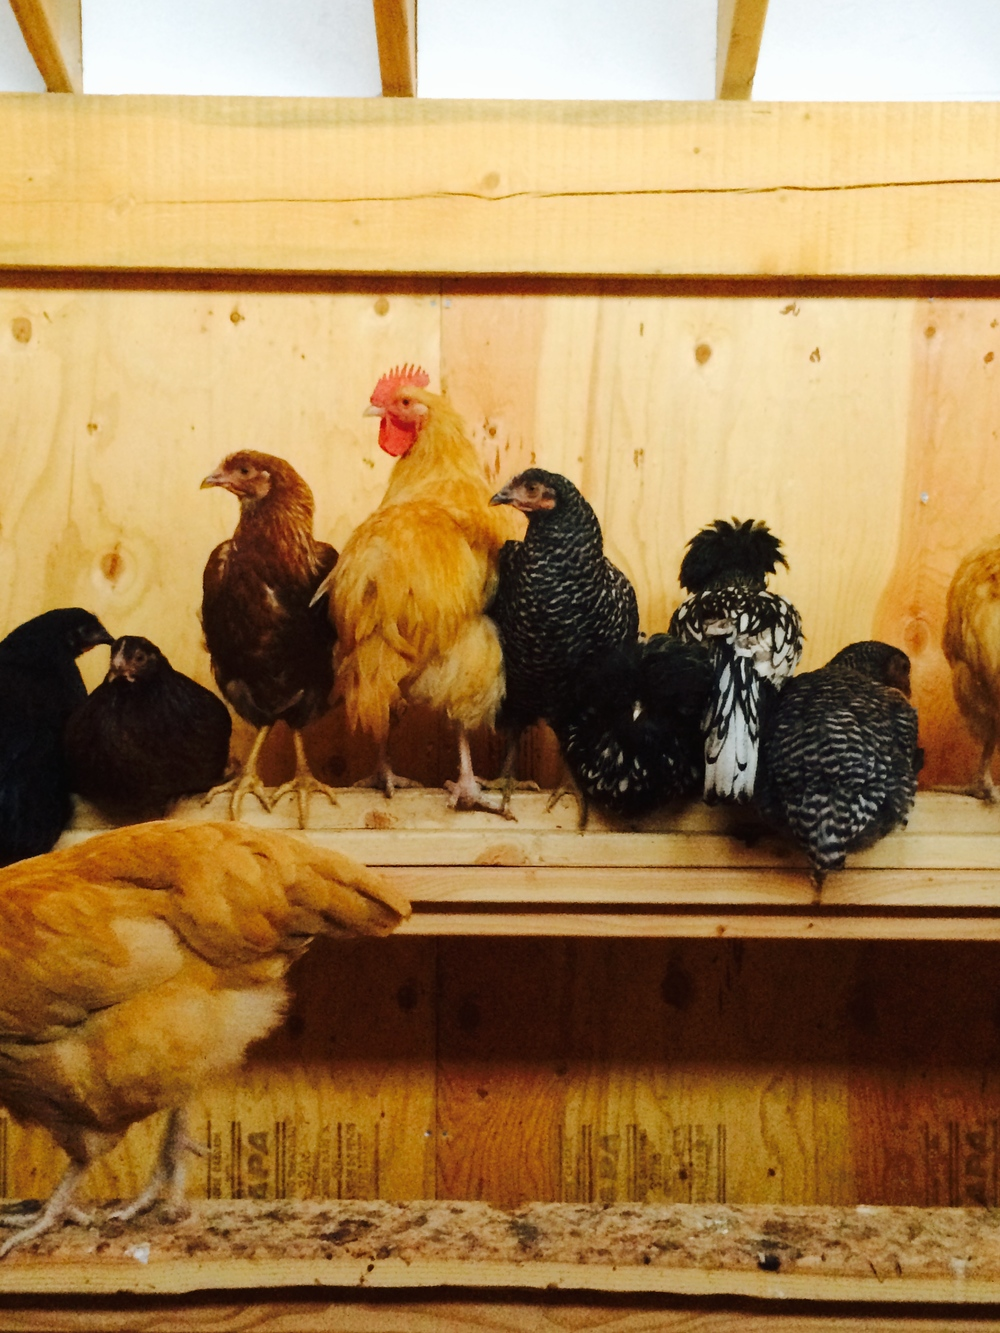 The Rooster & Hens